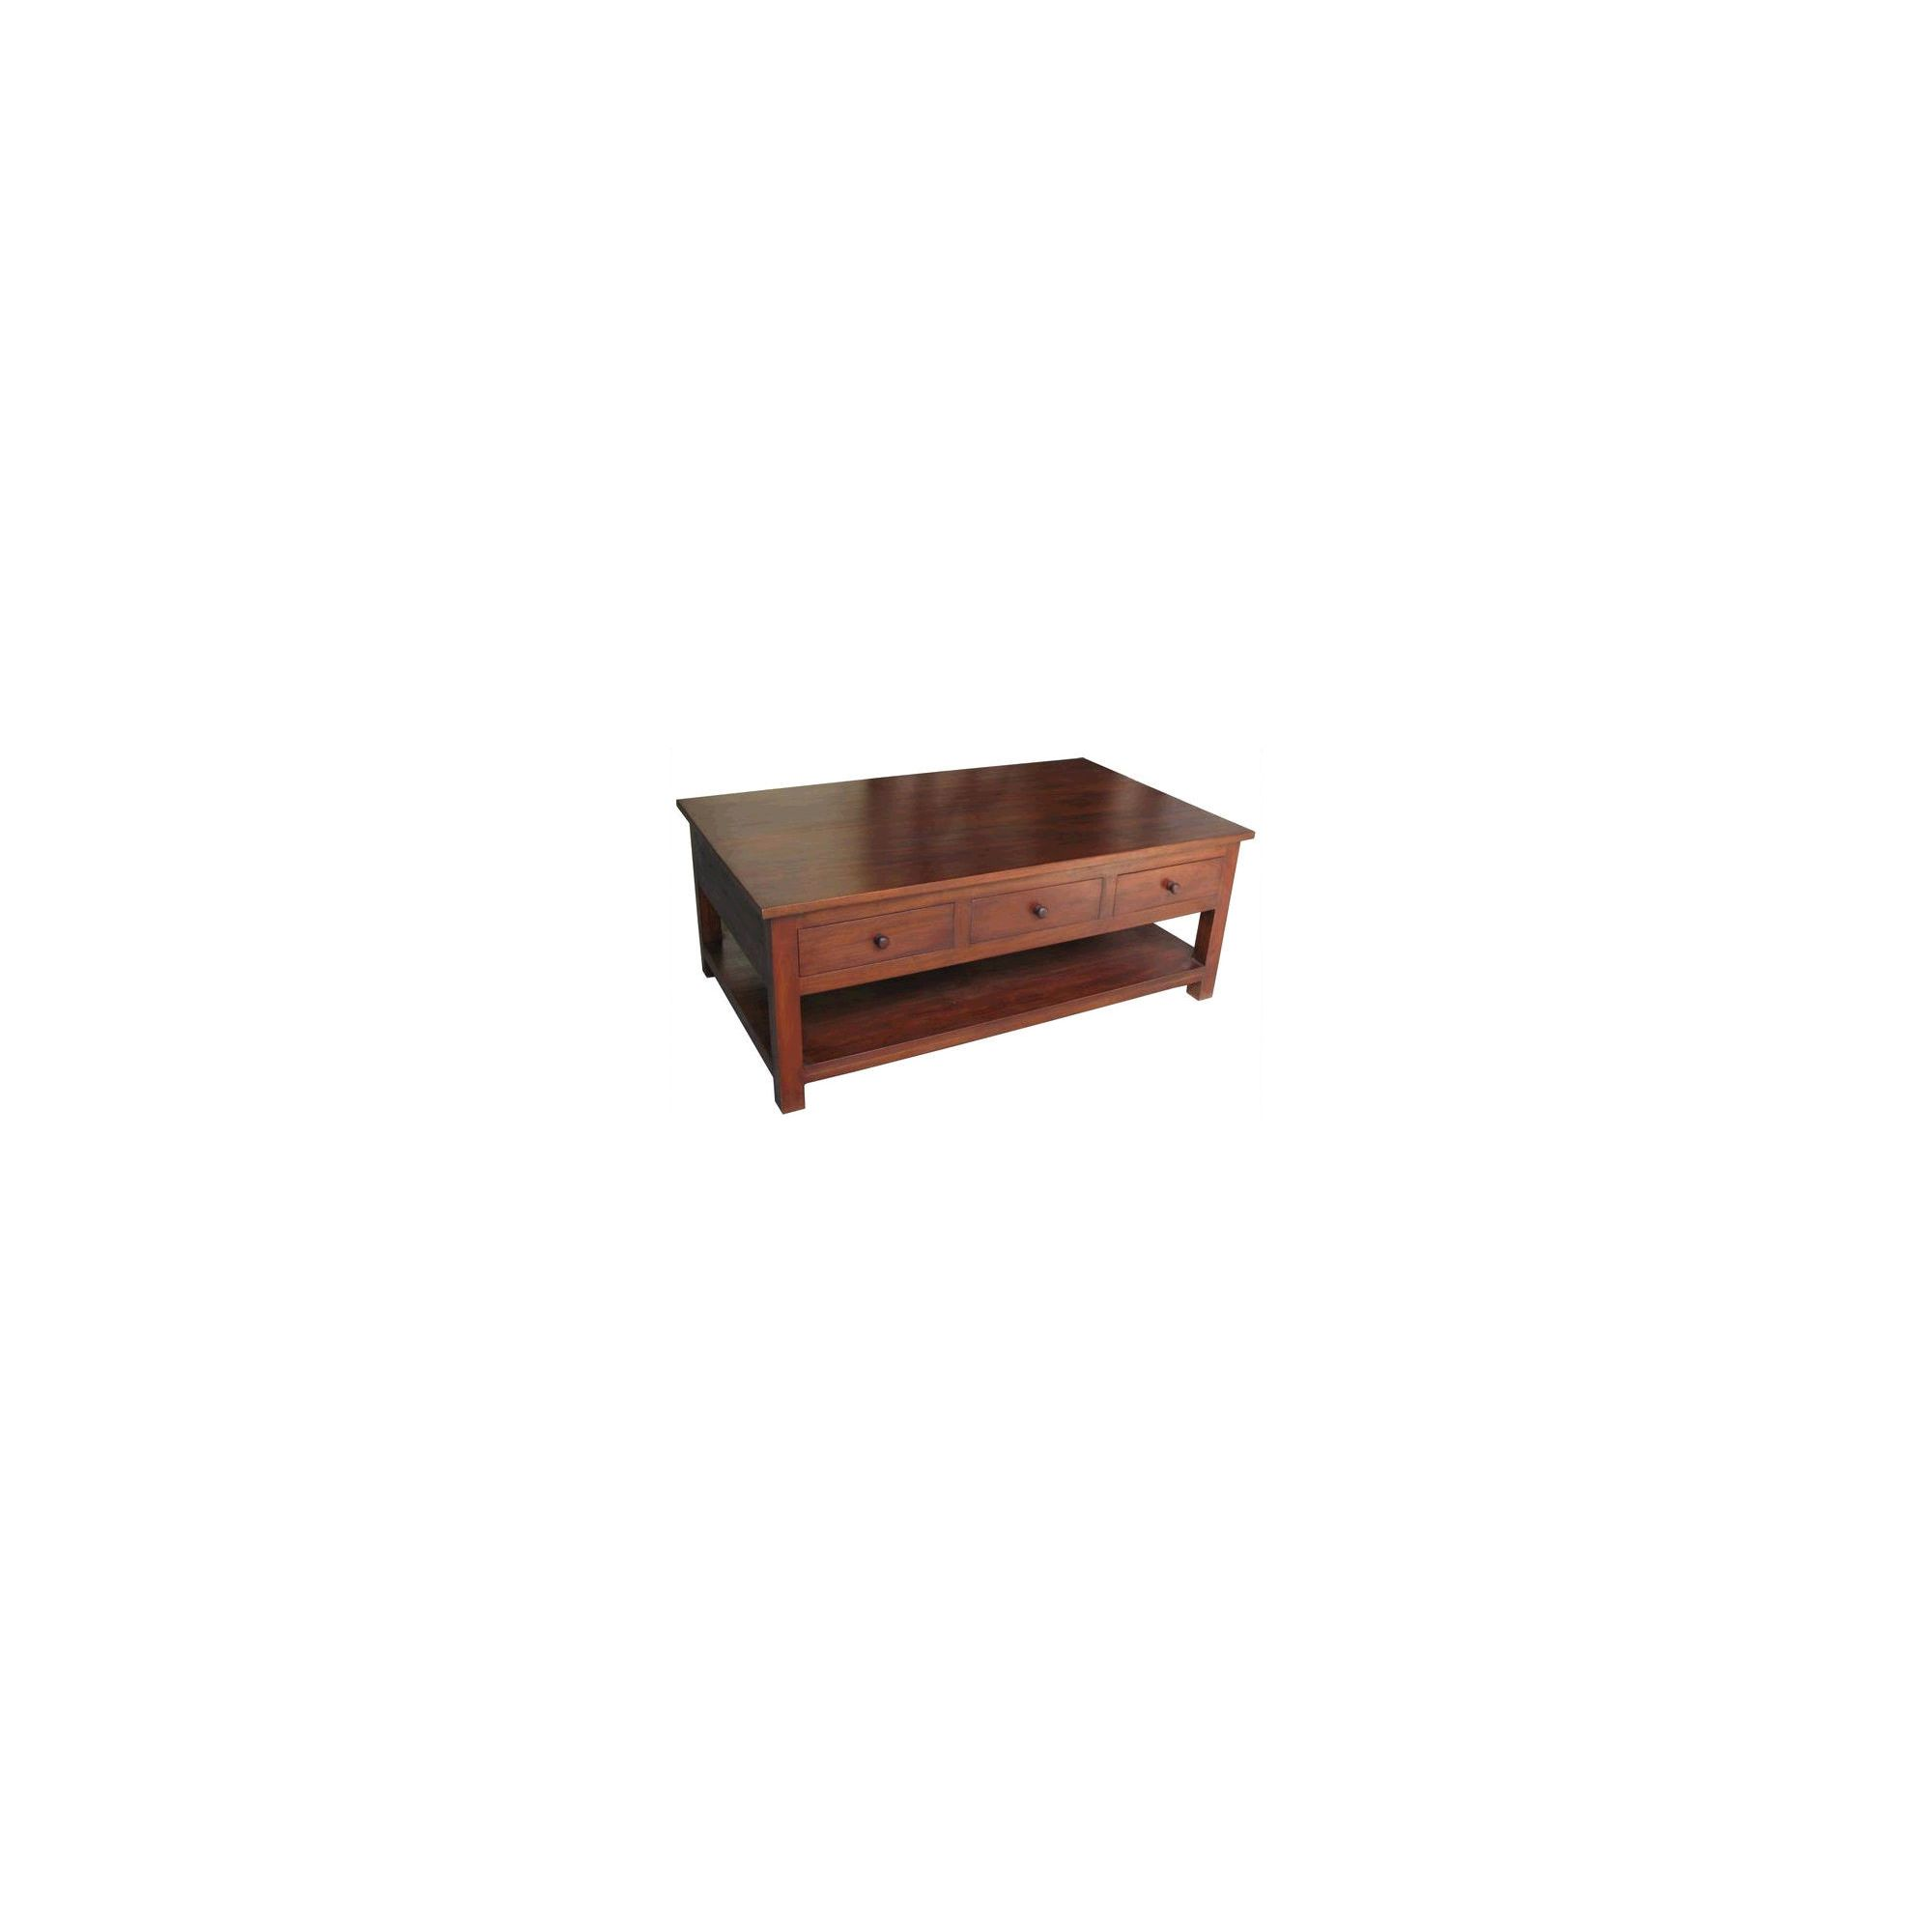 Lock stock and barrel Mahogany Leafield Coffee Table in Mahogany at Tesco Direct